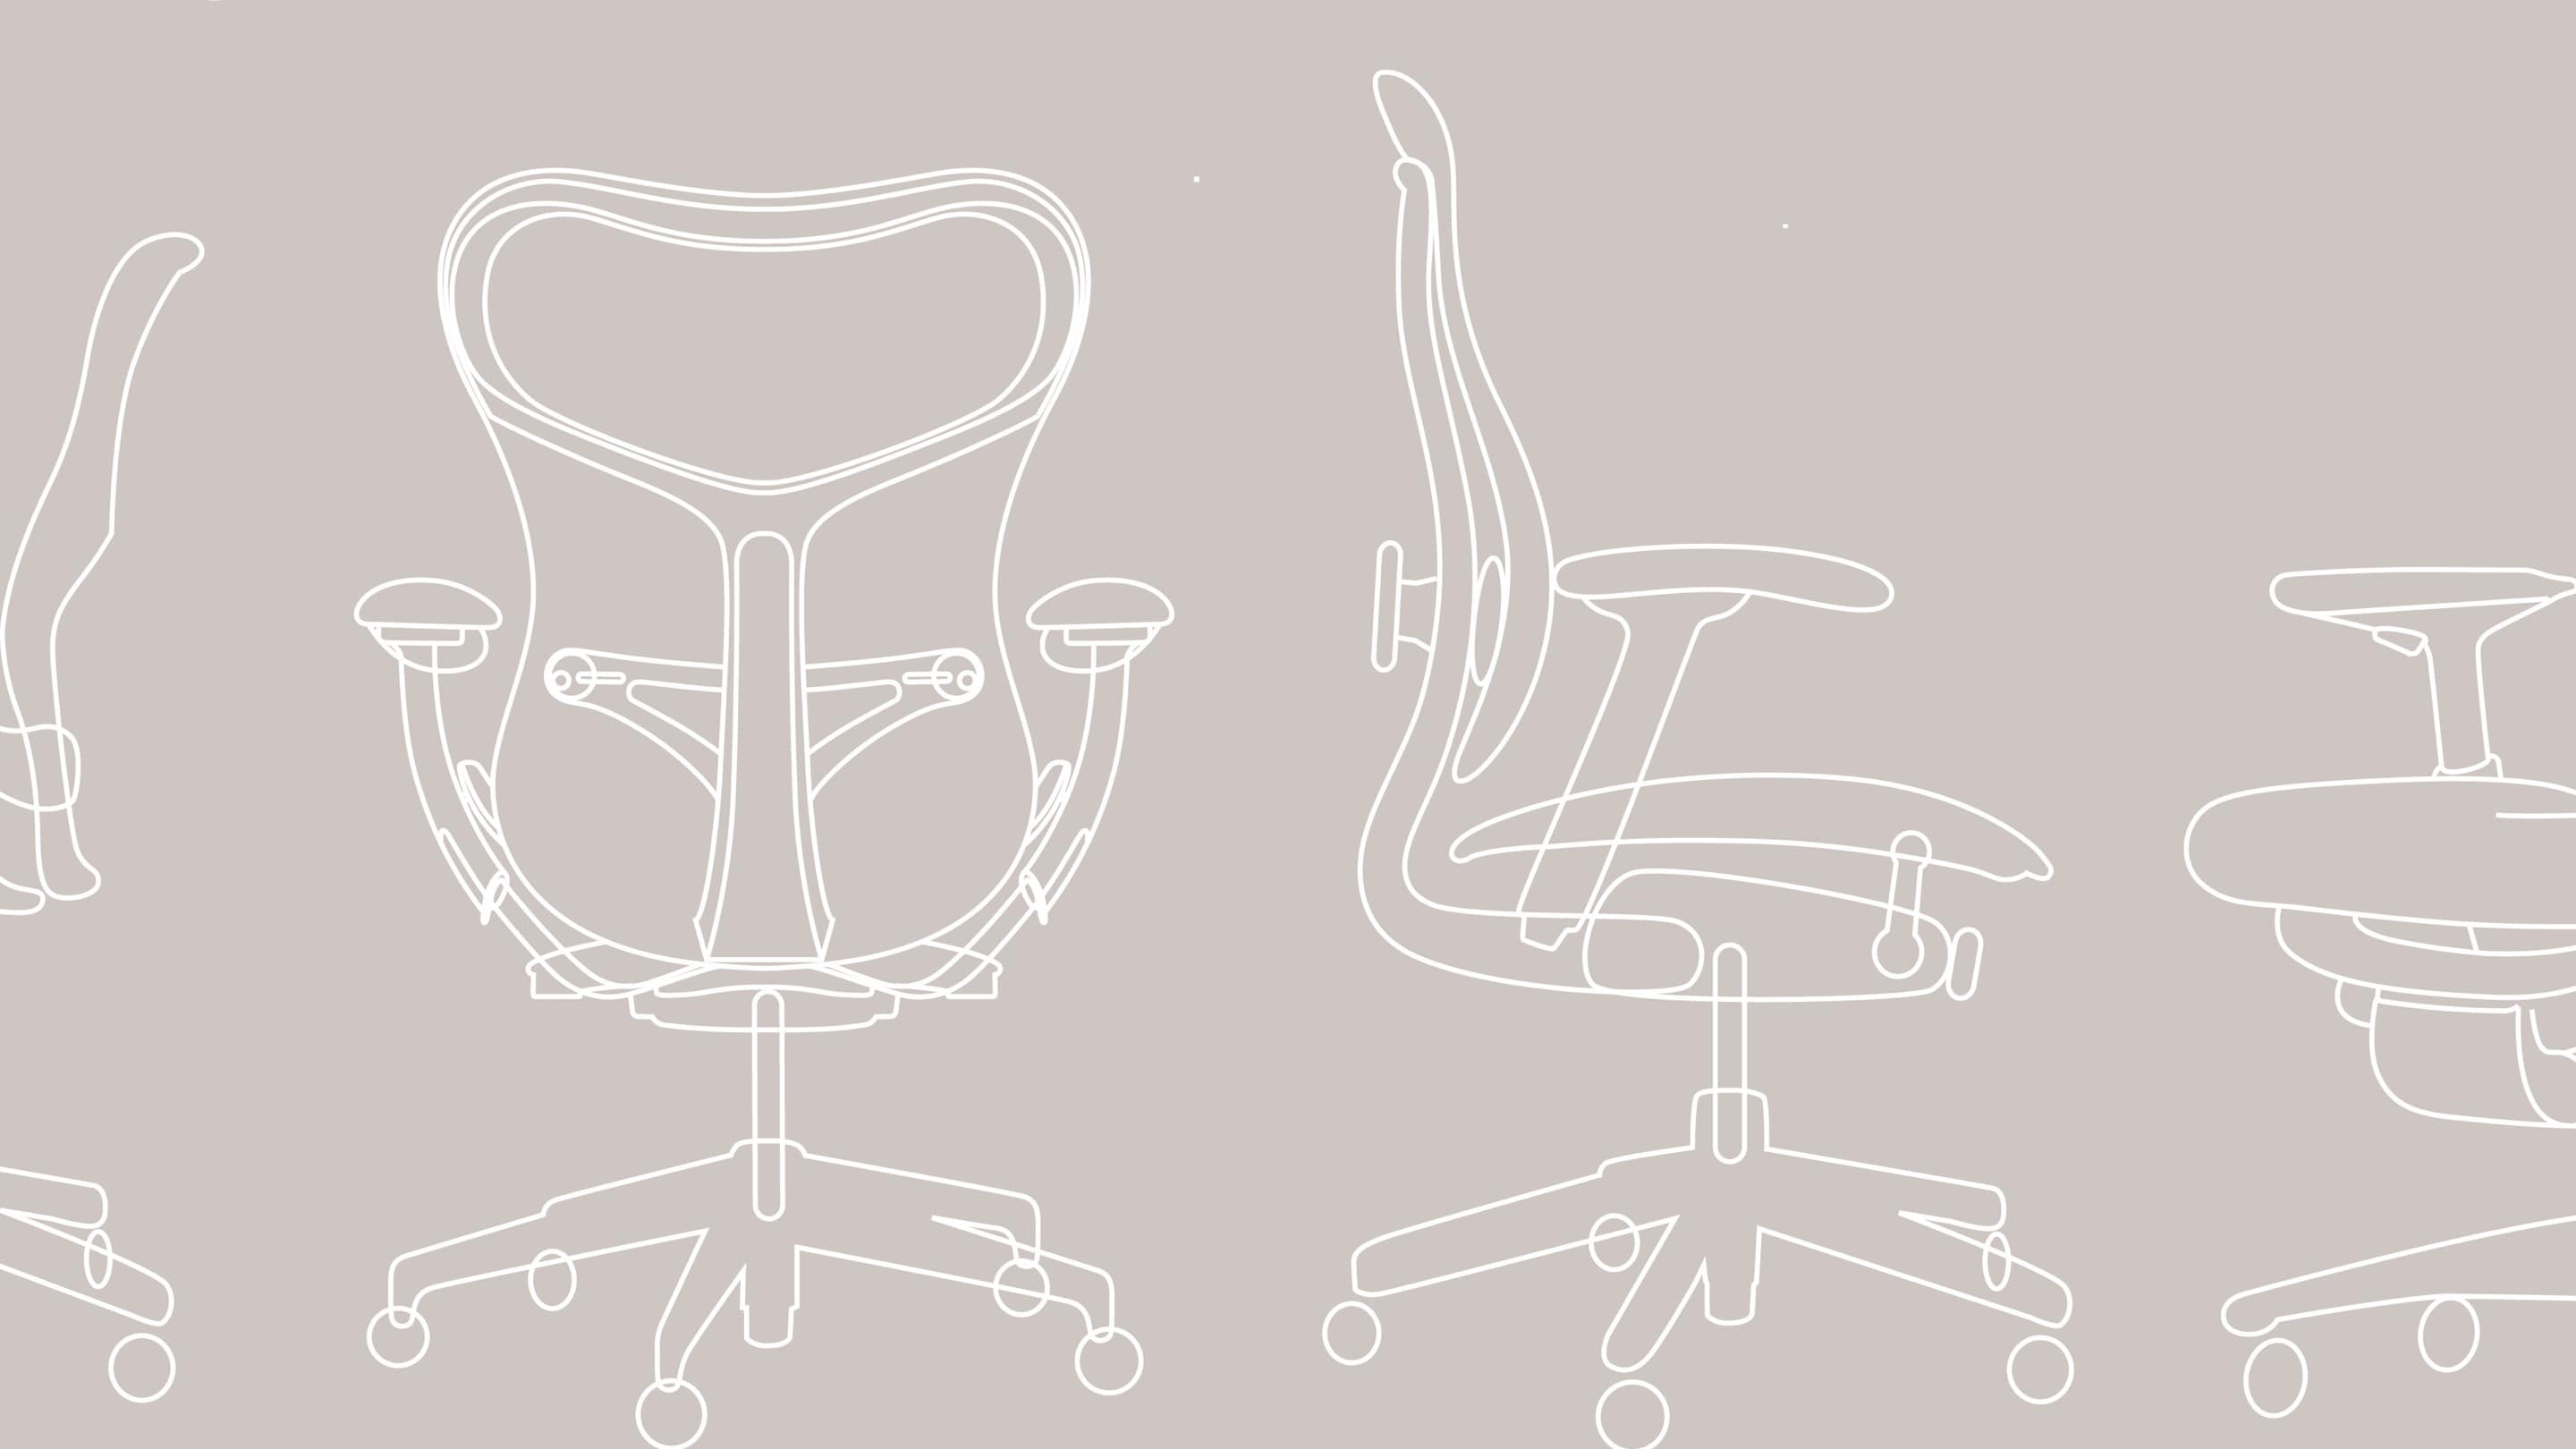 chair design research white wedding covers uk the attributes of thermal comfort herman miller a graphic rendering an aeron from various angles